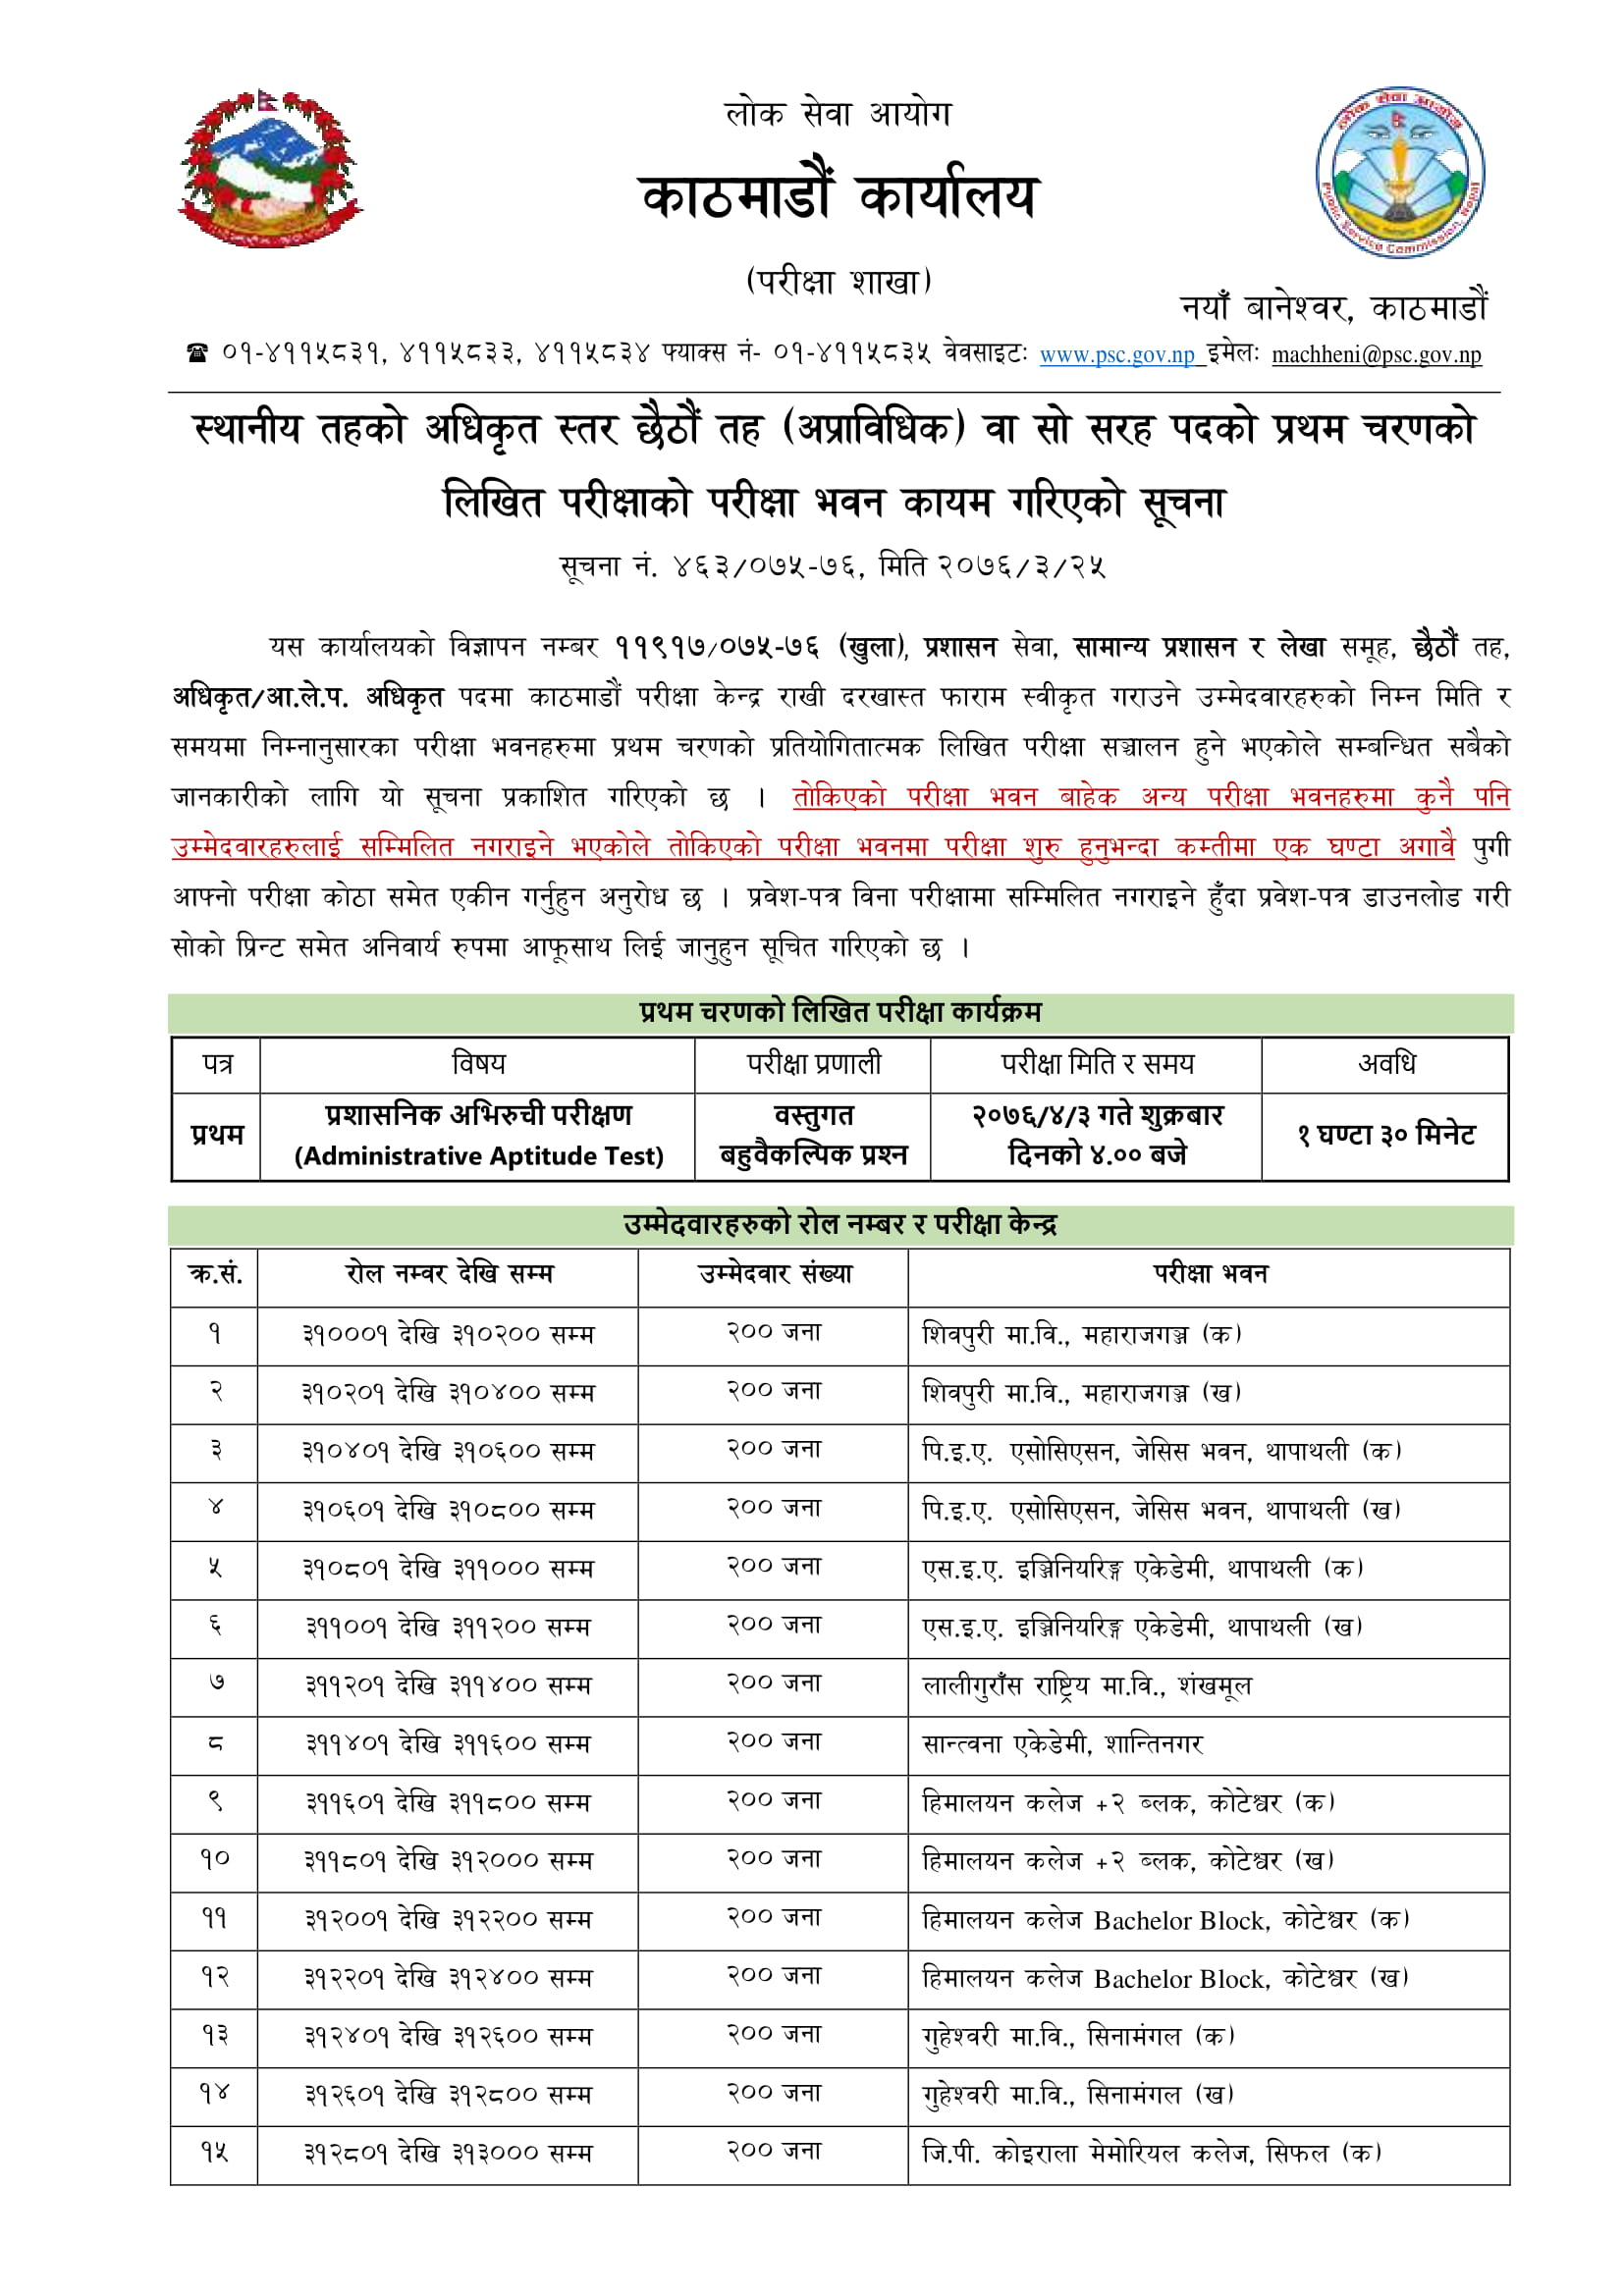 Lok Sewa Aayog Exam center 4th,  PSC Exam Center 4th,  Lok Sewa Exam Center 4th, Lok Sewa Aayog Exam center 4th 2076,  PSC Exam Center 4th 2076, Lok Sewa Exam Center 4th 2076, Lok Sewa Aayog Exam center 5th,  PSC Exam Center 5th,  Lok Sewa Exam Center 5th, Lok Sewa Aayog Exam center 5th 2076,  PSC Exam Center 5th 2076, Lok Sewa Exam Center 5th 2076, Lok Sewa Aayog Exam center 6th,  PSC Exam Center 6th,  Lok Sewa Exam Center 6th, Lok Sewa Aayog Exam center 6th 2076,  PSC Exam Center 6th 2076, Lok Sewa Exam Center 6th 2076, Lok Sewa Aayog Exam center Prasa,  PSC Exam Center Prasa,  Lok Sewa Exam Center Prasa, Lok Sewa Aayog Exam center Prasa 2076,  PSC Exam Center Prasa 2076, Lok Sewa Exam Center Prasa 2076, Lok Sewa Aayog Exam center  ,  PSC Exam Center  ,  Lok Sewa Exam Center  ,     Lok Sewa Aayog Exam center 4th,  PSC Exam Center 4th,  Lok Sewa Exam Center 4th, Lok Sewa Aayog Exam center 4th 2076,  PSC Exam Center 4th 2076, Lok Sewa Exam Center 4th 2076, Lok Sewa Aayog Exam center 5th,  PSC Exam Center 5th,  Lok Sewa Exam Center 5th, Lok Sewa Aayog Exam center 5th 2076,  PSC Exam Center 5th 2076, Lok Sewa Exam Center 5th 2076, Lok Sewa Aayog Exam center 6th,  PSC Exam Center 6th,  Lok Sewa Exam Center 6th, Lok Sewa Aayog Exam center 6th 2076,  PSC Exam Center 6th 2076, Lok Sewa Exam Center 6th 2076, Lok Sewa Aayog Exam center Prasa,  PSC Exam Center Prasa,  Lok Sewa Exam Center Prasa, Lok Sewa Aayog Exam center Prasa 2076,  PSC Exam Center Prasa 2076, Lok Sewa Exam Center Prasa 2076, Lok Sewa Aayog Exam center  ,  PSC Exam Center  ,  Lok Sewa Exam Center  ,